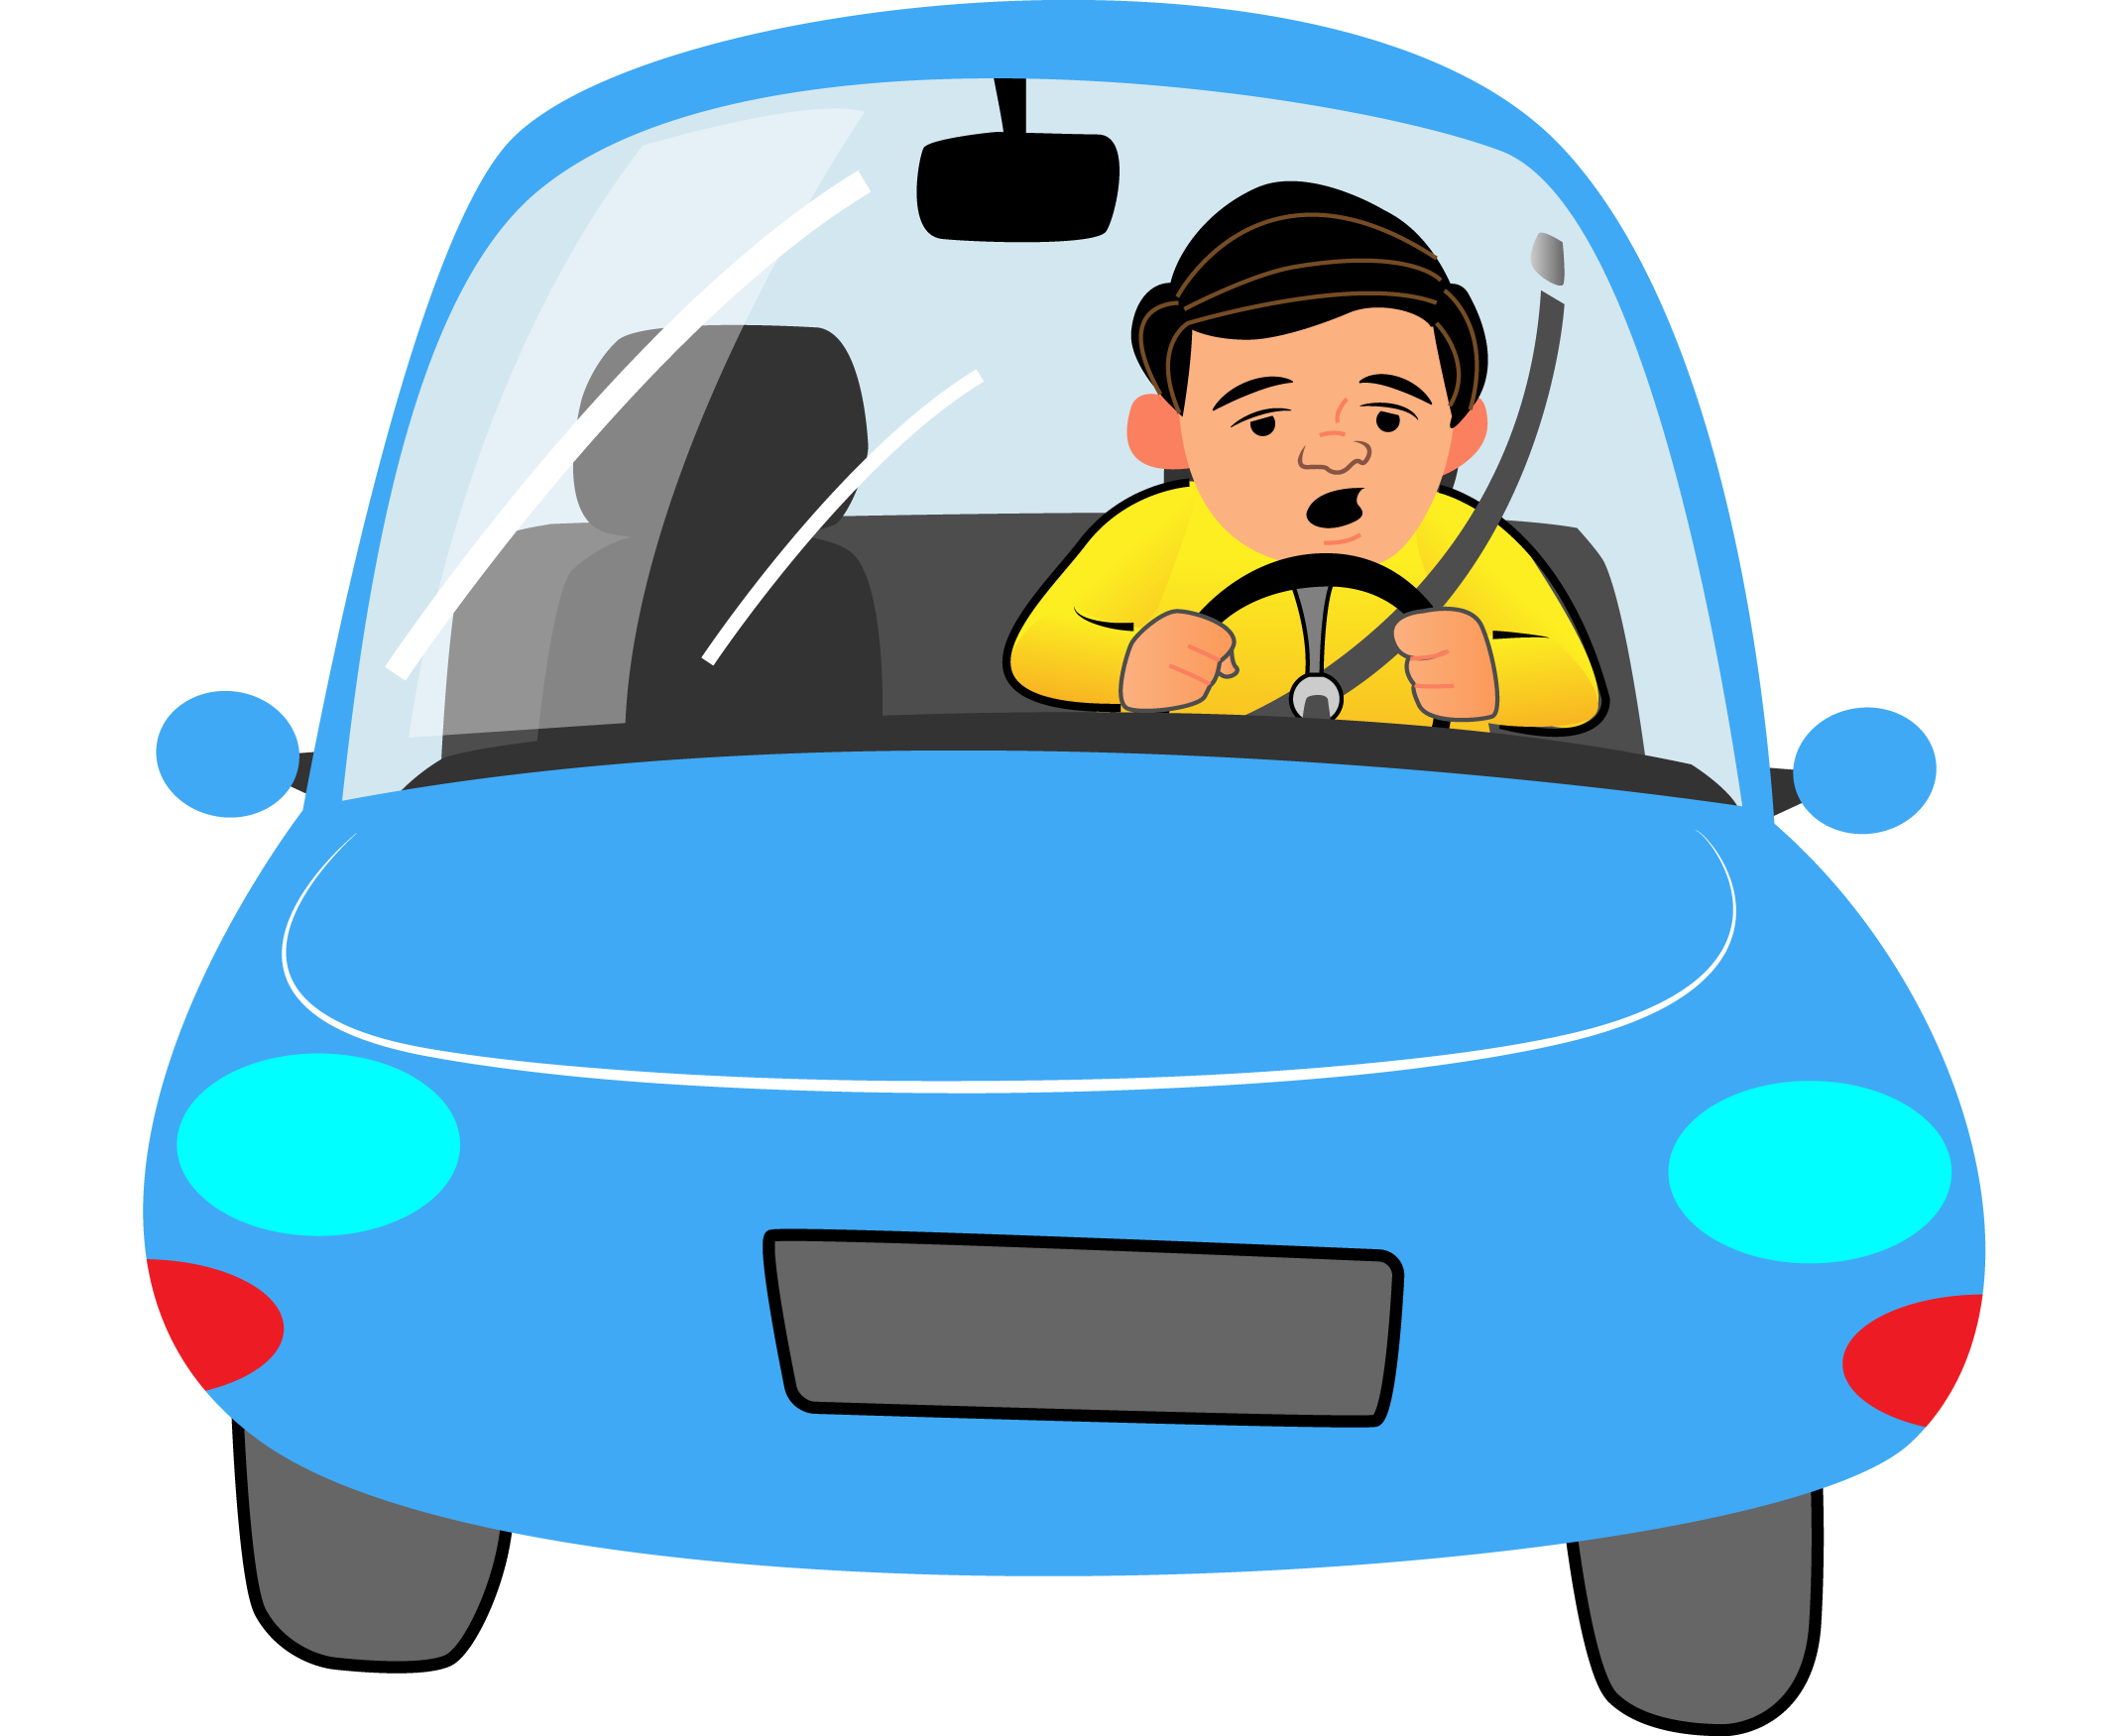 Driving clipart sleepy driver. How to do more